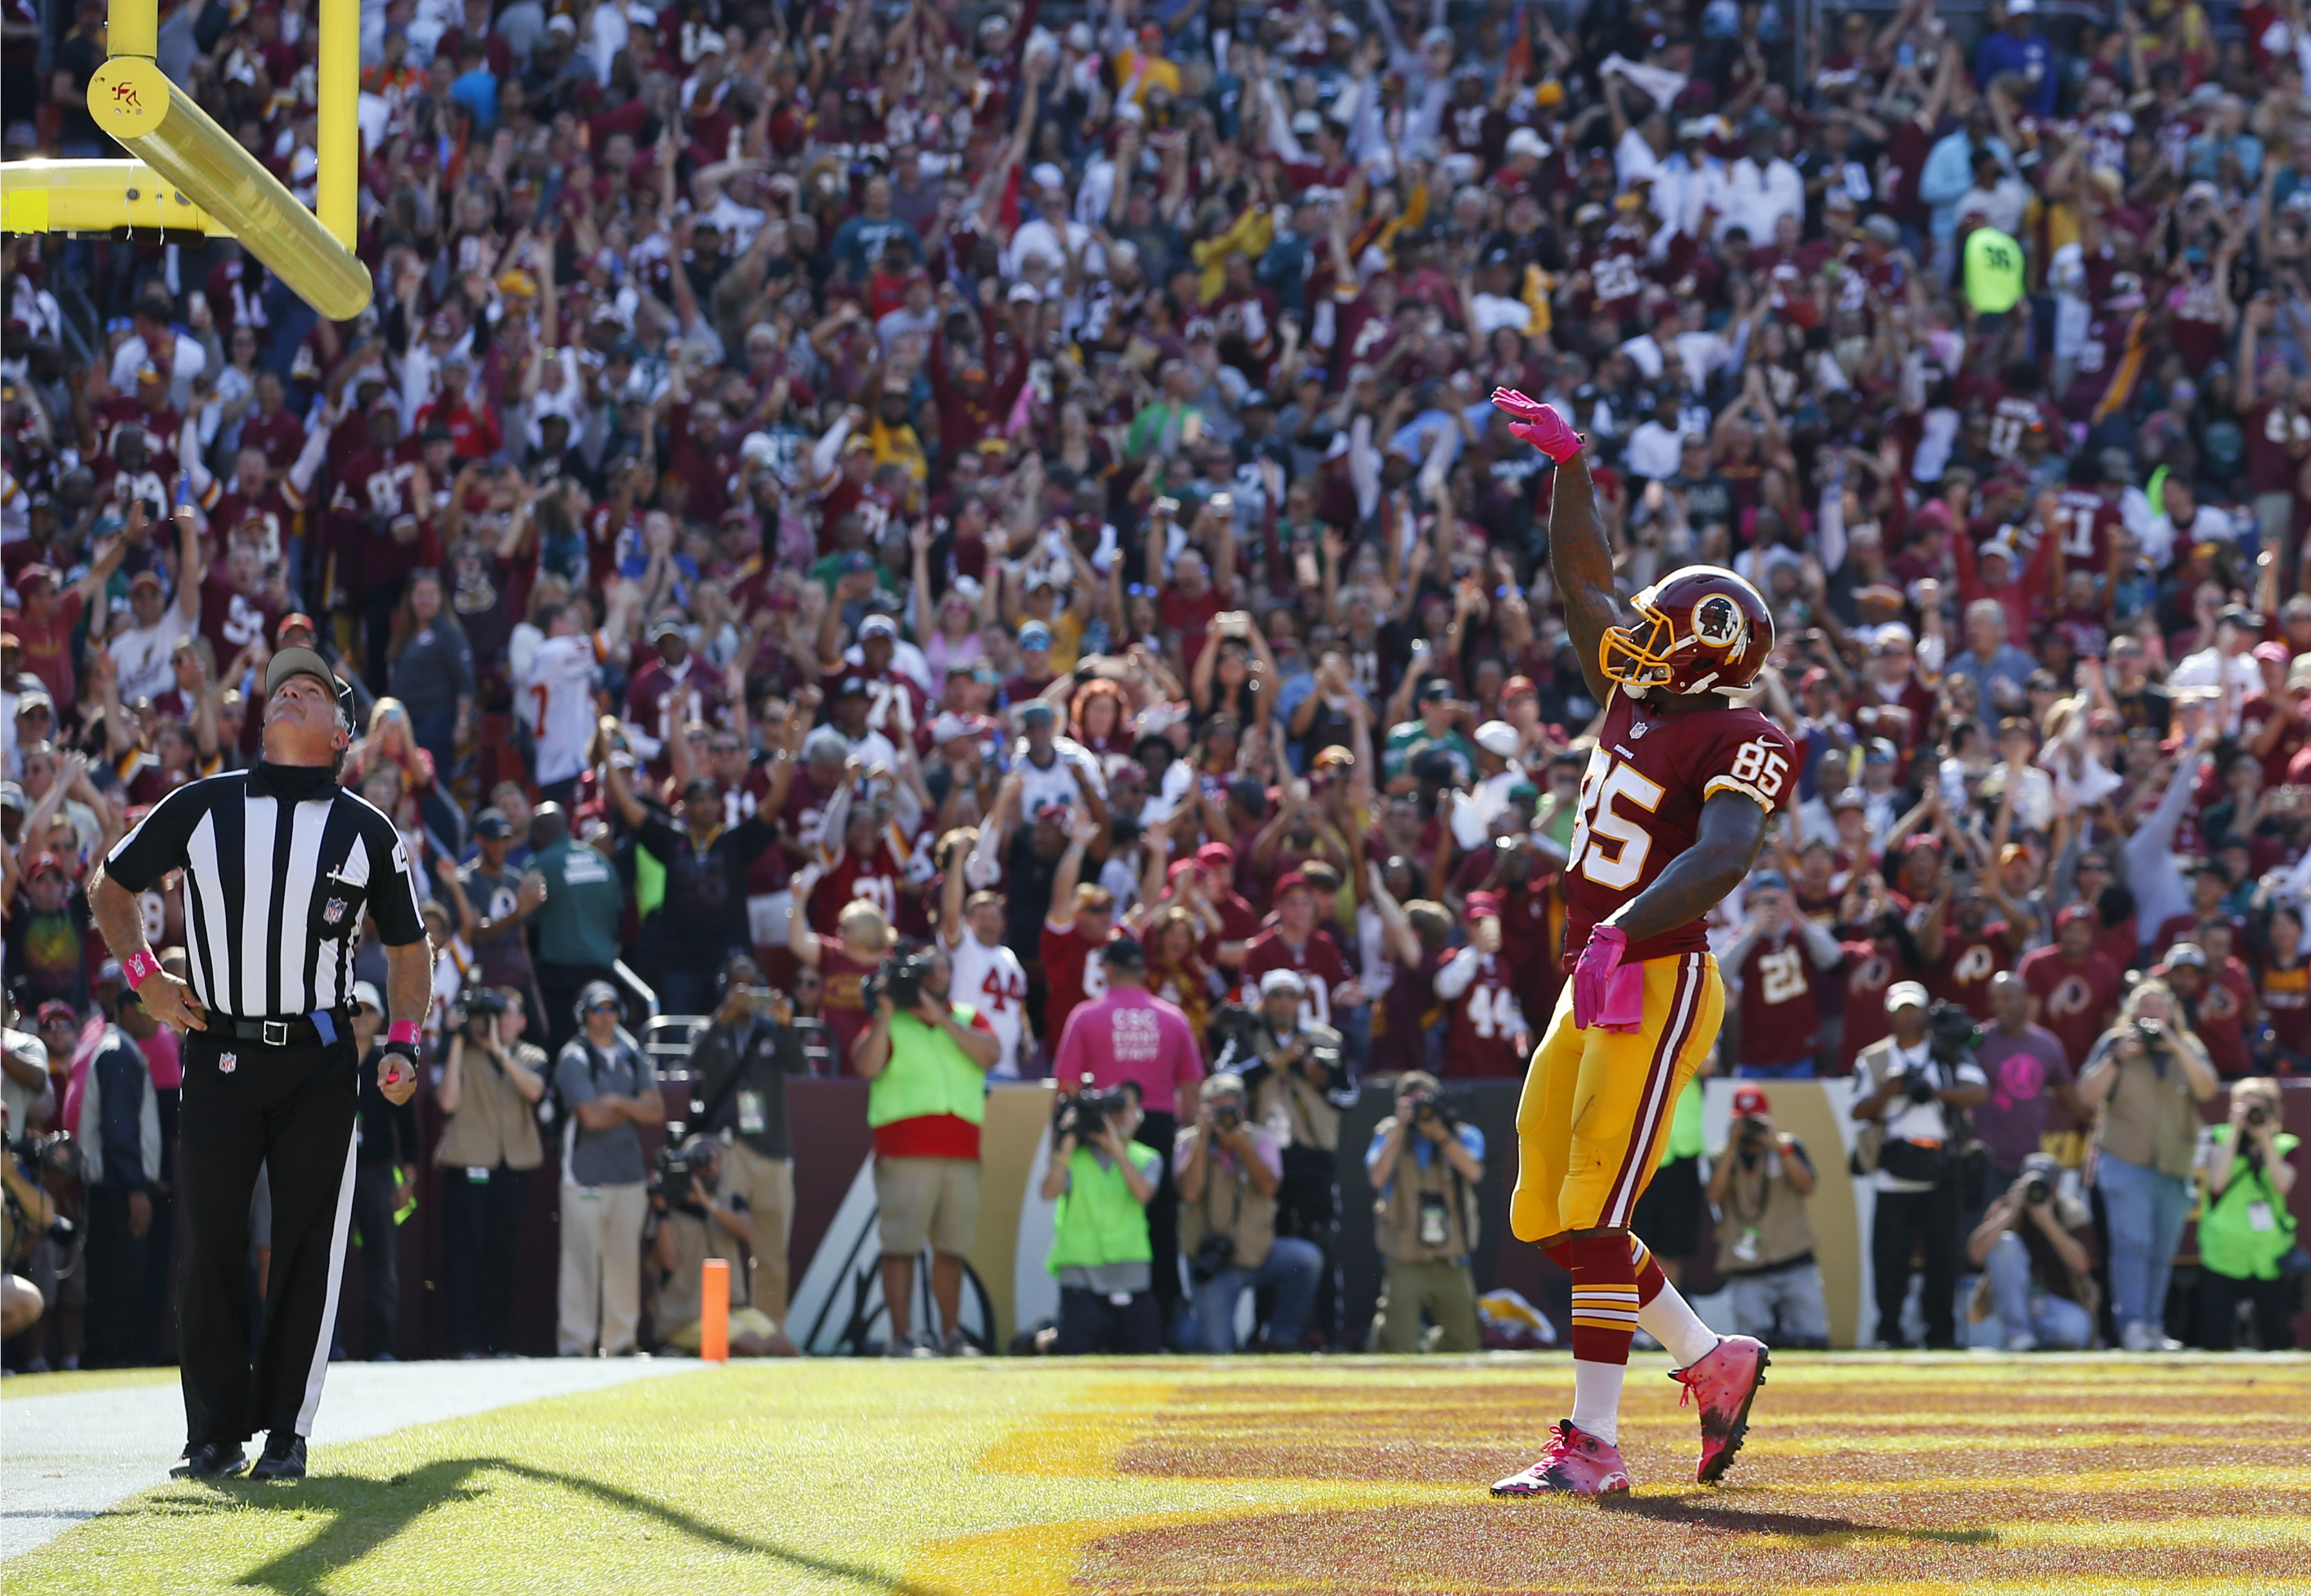 Washington Redskins tight end Vernon Davis celebrates after scoring a touchdown in the first half of an NFL football game against the Philadelphia Eagles, Sunday, Oct. 16, 2016, in Landover, Md. (AP Photo/Alex Brandon)